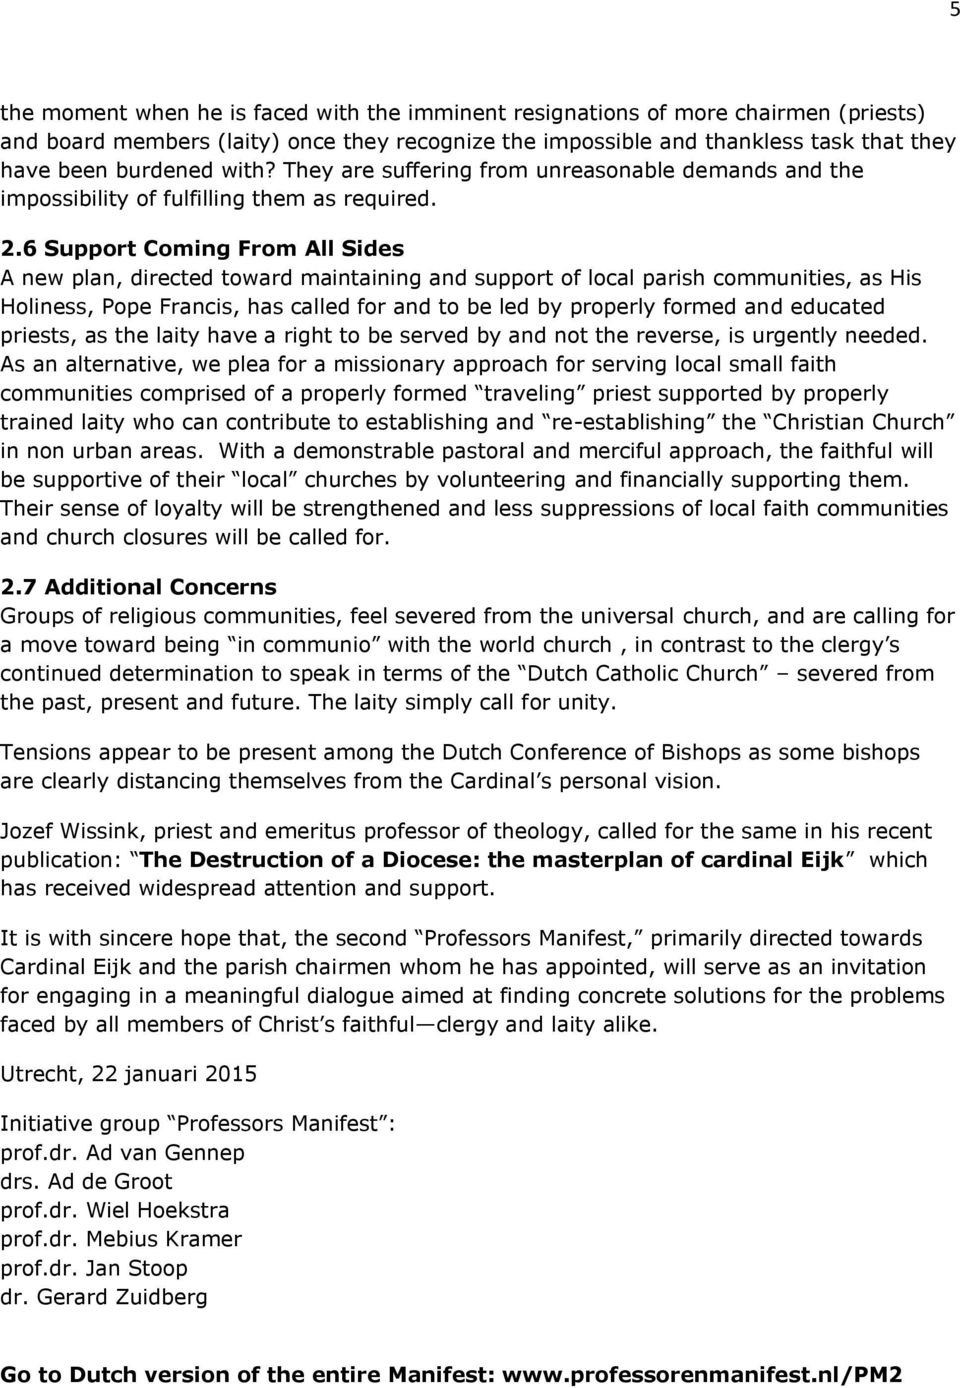 6 Support Coming From All Sides A new plan, directed toward maintaining and support of local parish communities, as His Holiness, Pope Francis, has called for and to be led by properly formed and